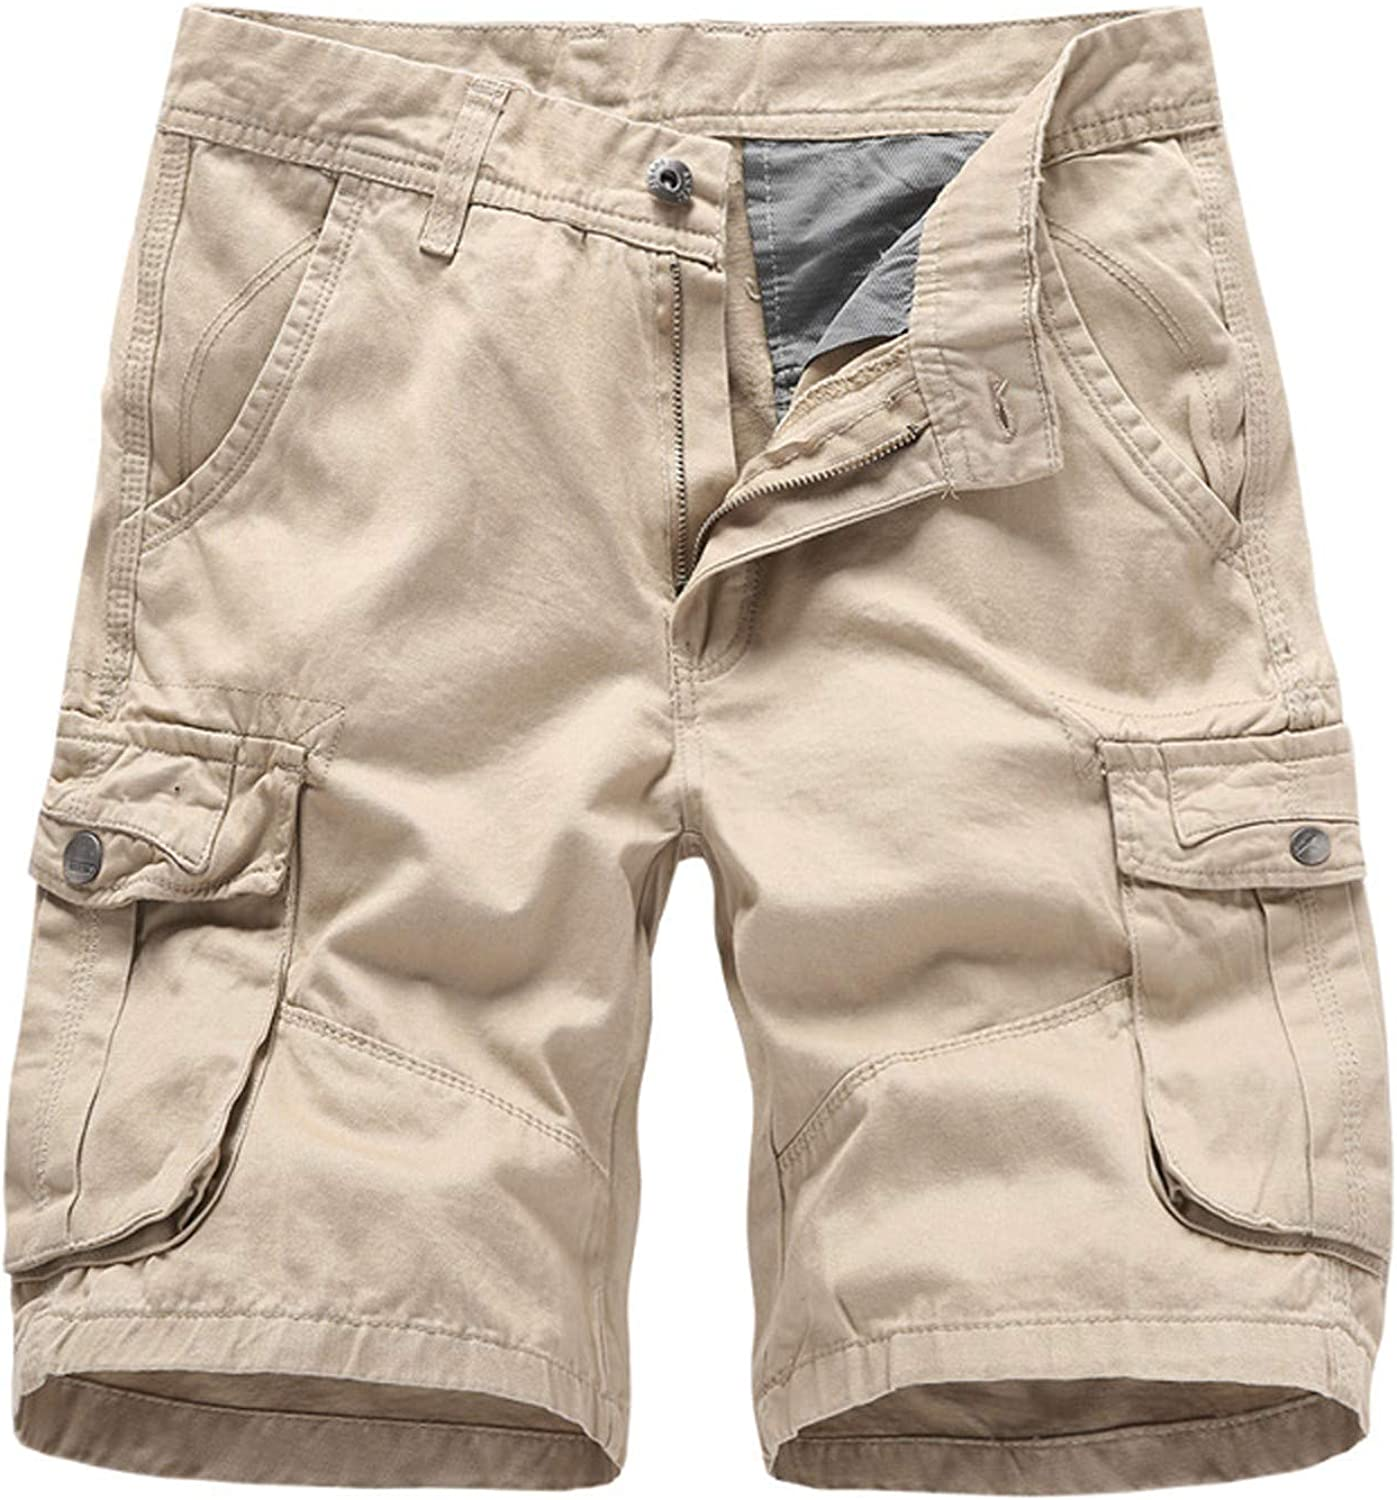 Mens Shorts Upgraded Waterproof Cargo Dry Quick Tactical 5 popular Animer and price revision